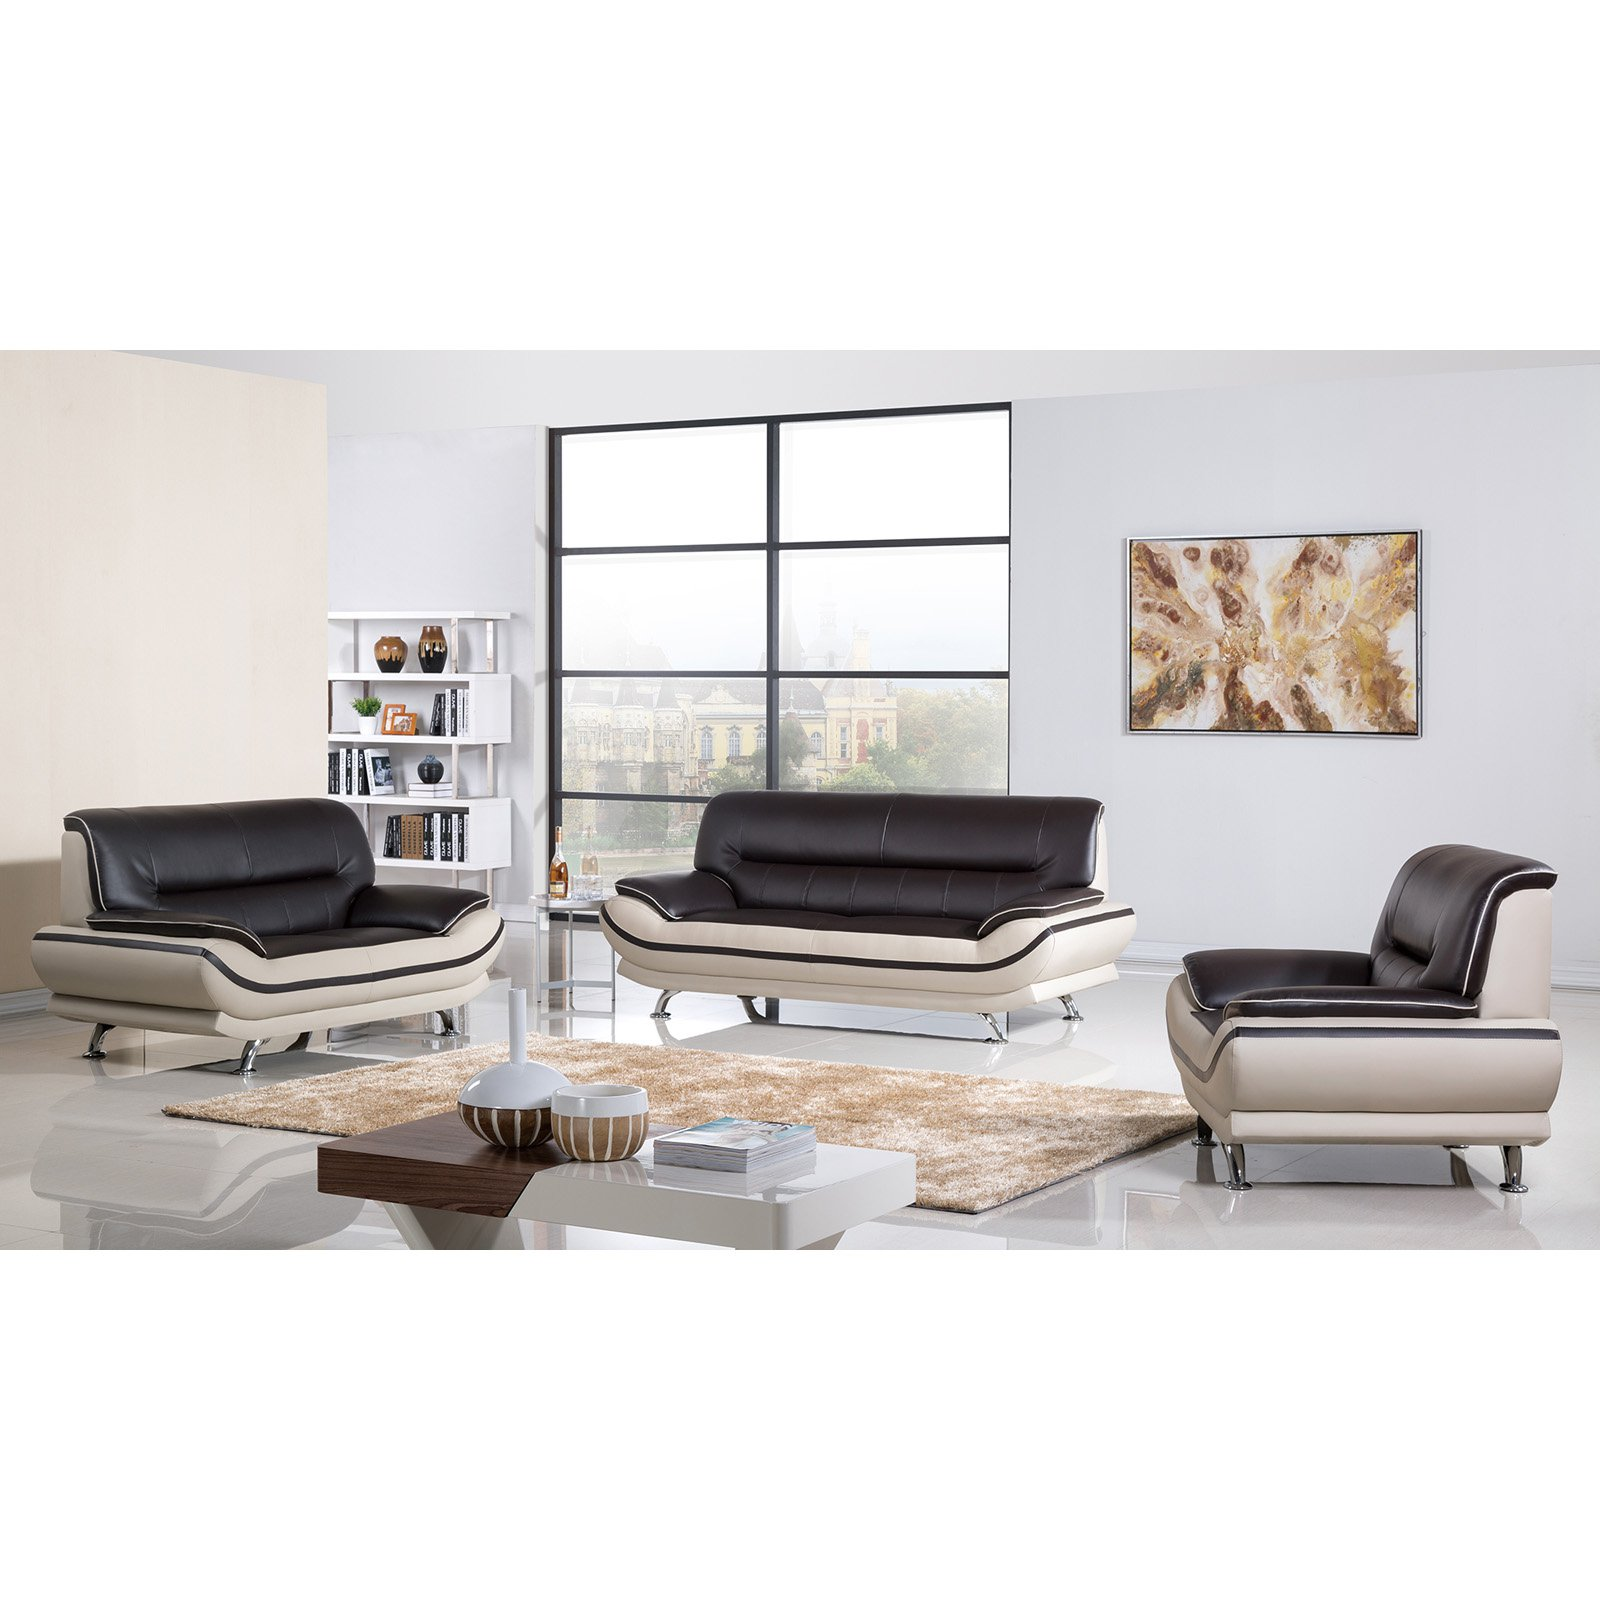 Delicieux American Eagle Furniture Mason 3 Piece Sofa Set   Walmart.com